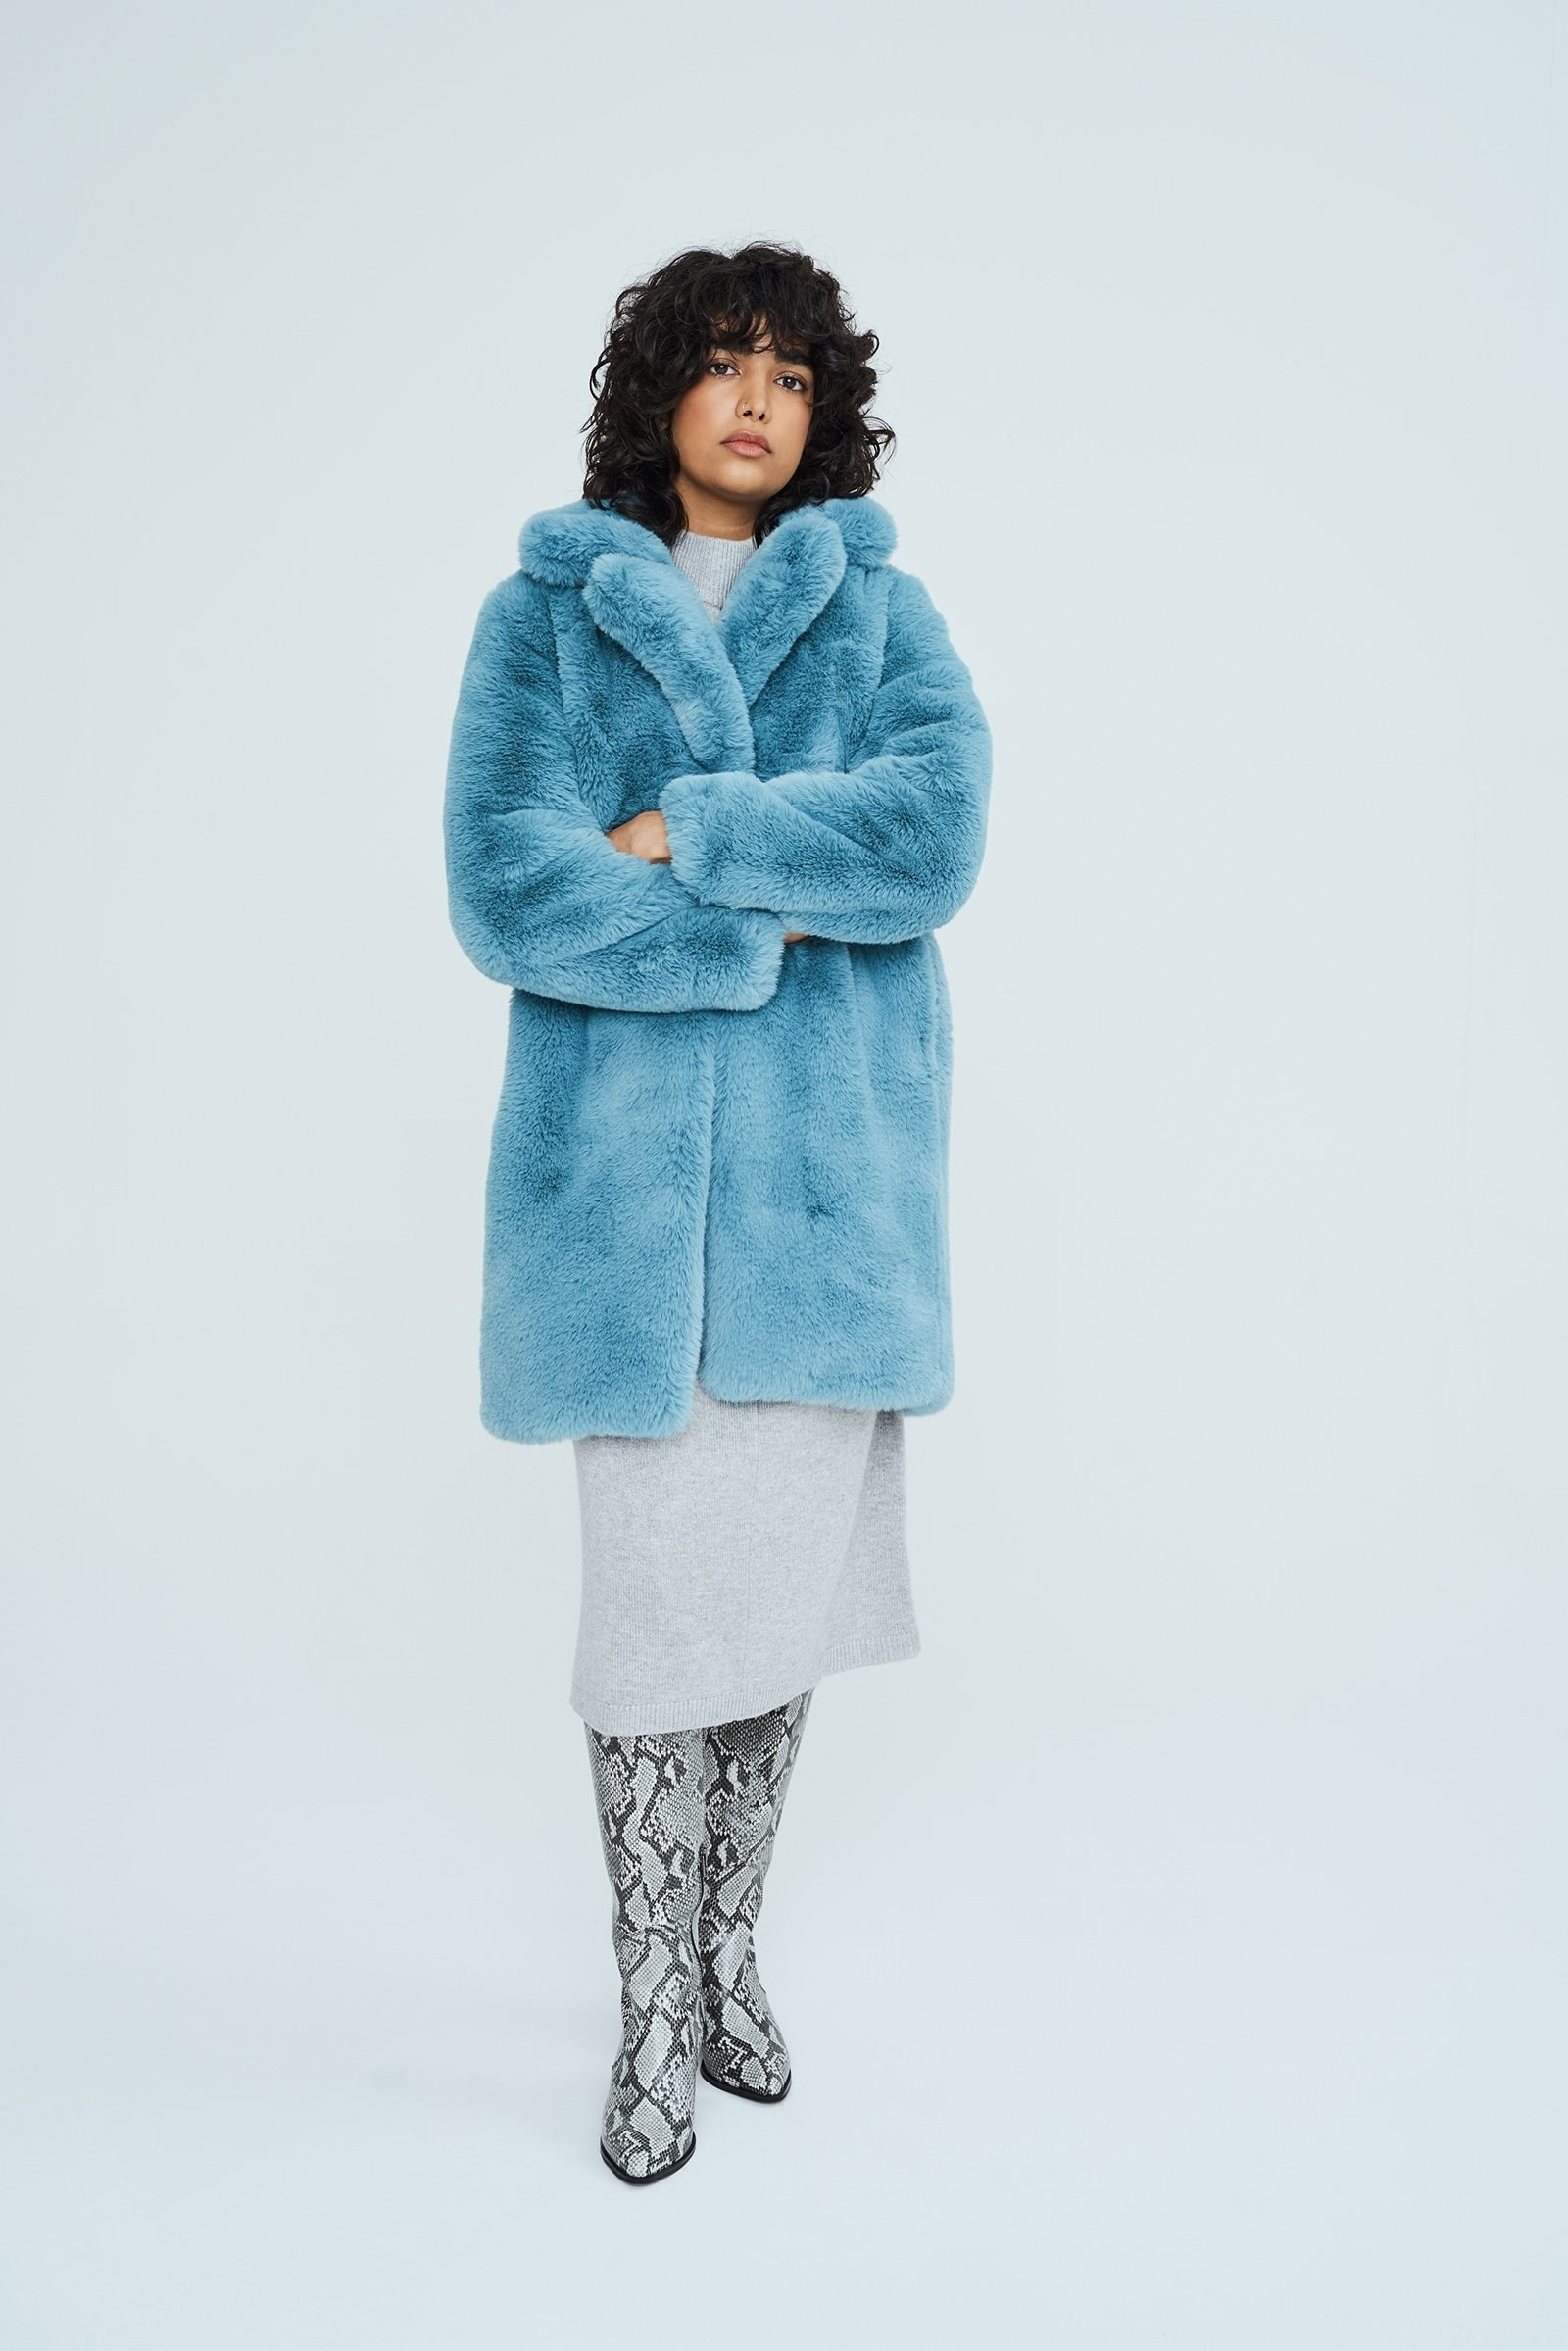 Model wearing a light blue faux fur coat